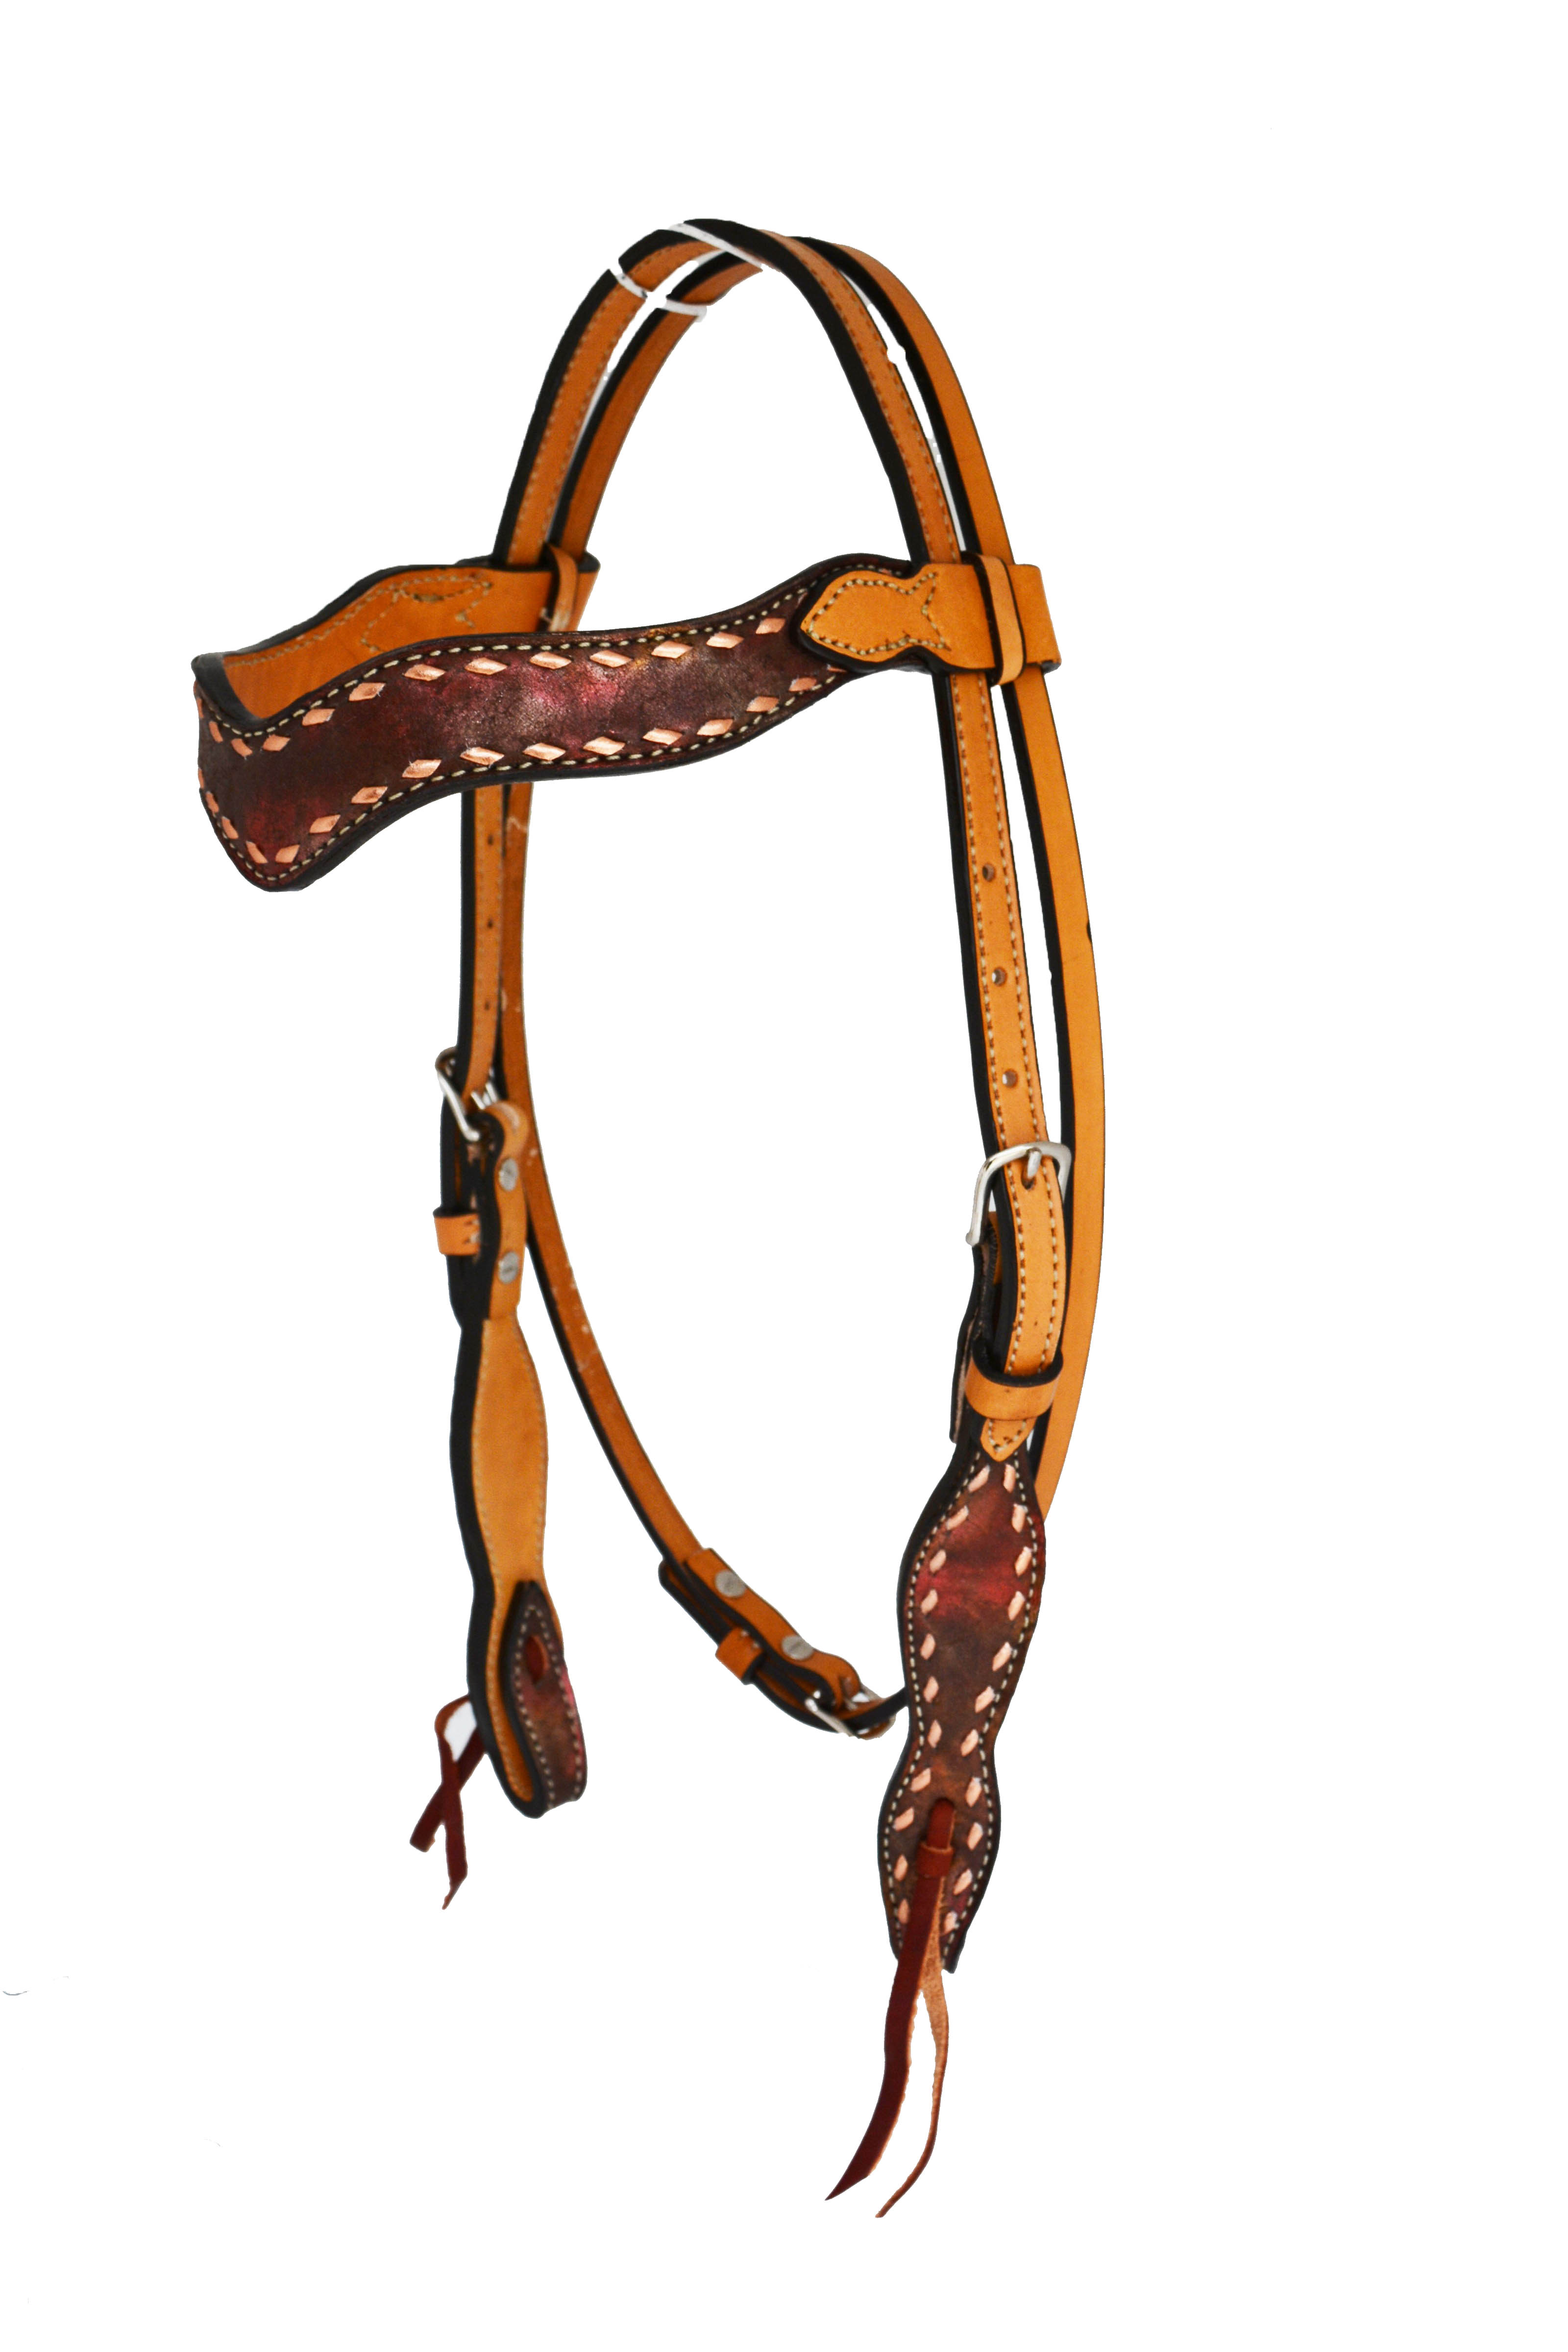 SLEEK WAVE STYLE HEADSTALL W COPPER MARBLE OVERLAY & BUCKSTITCH